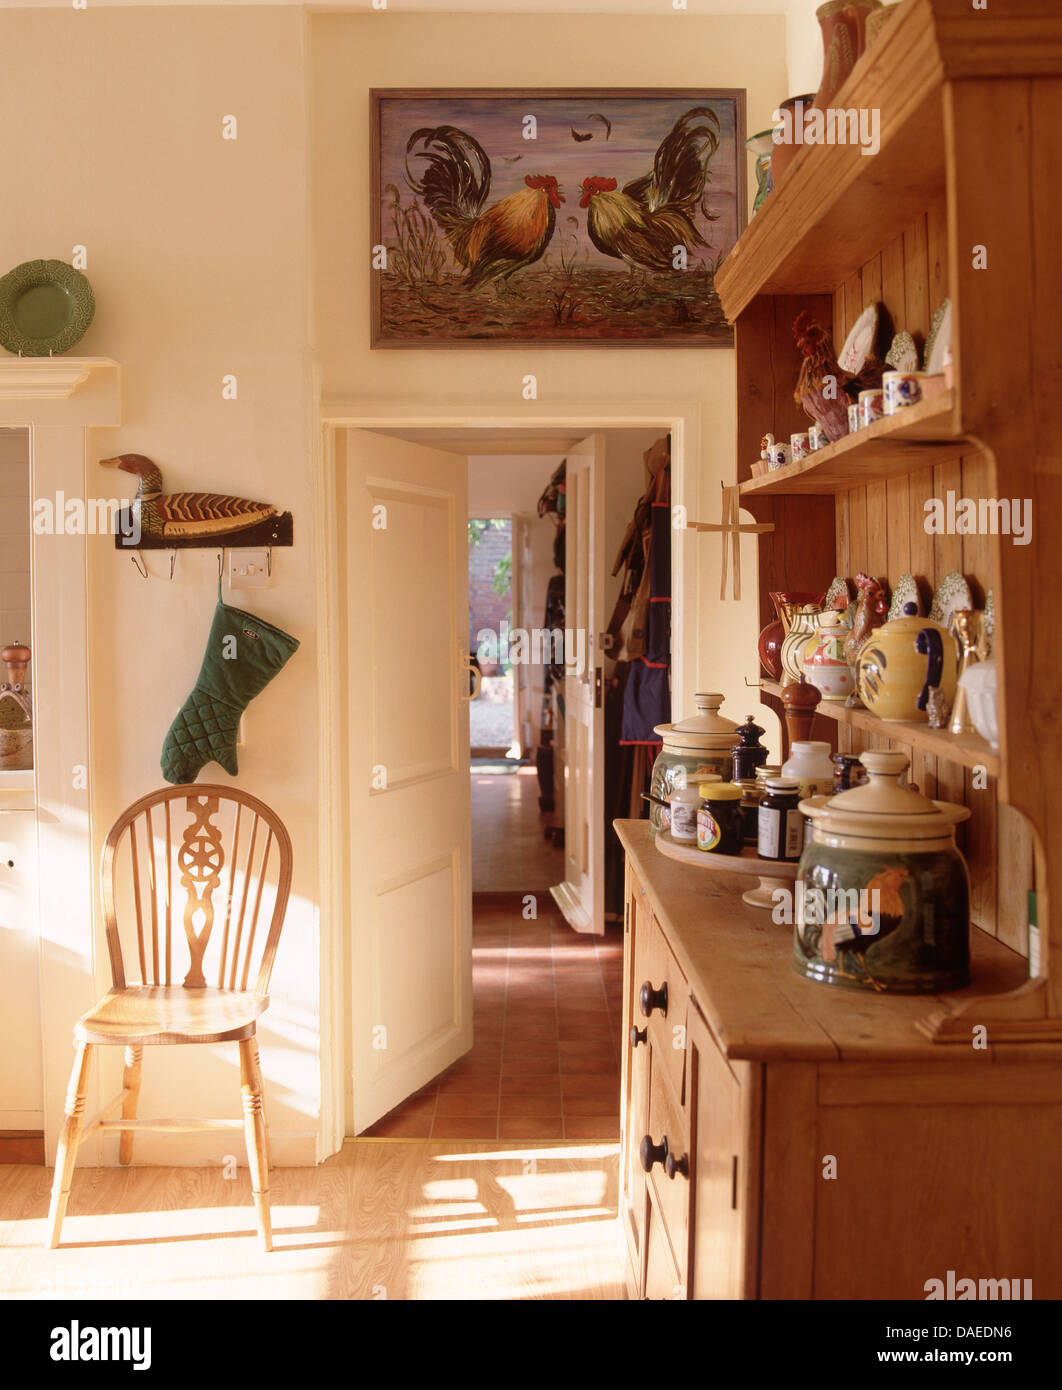 Display Of Pottery On Small Pine Dresser In Country Dining Room With Windsor Chair Beside Open Way